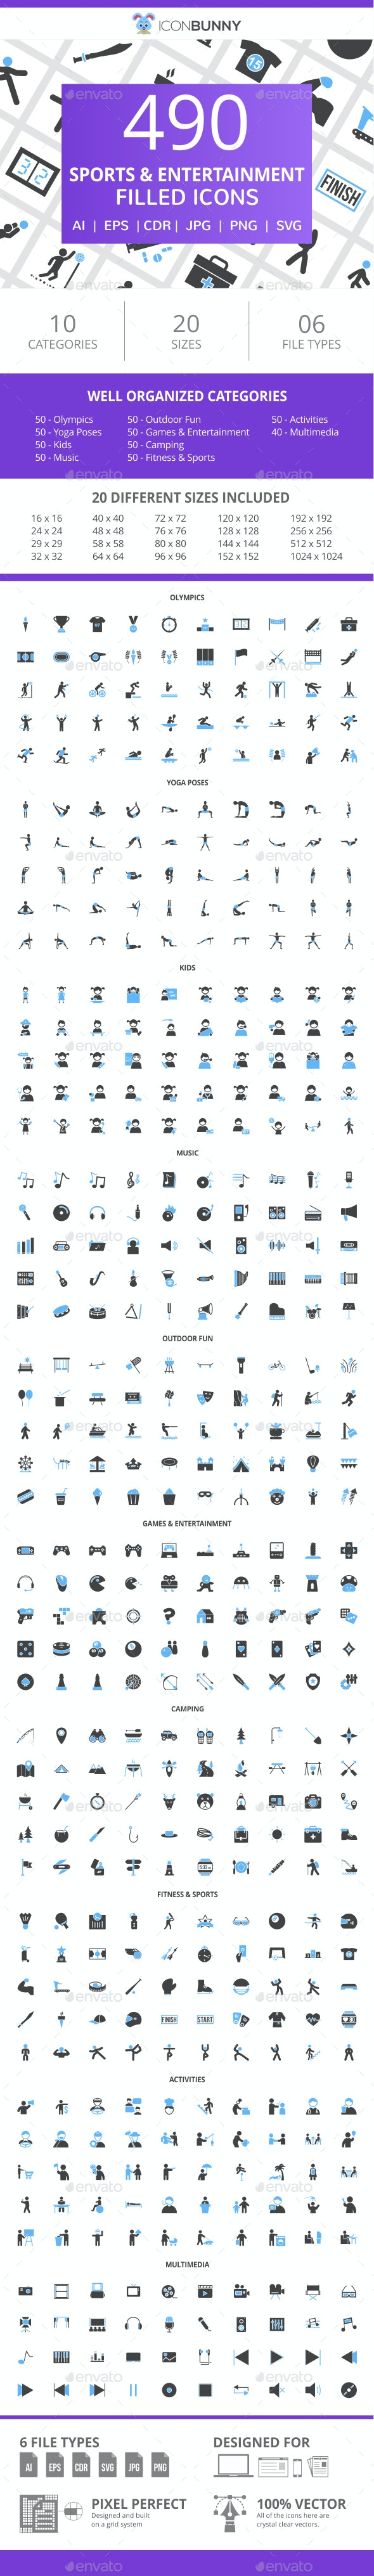 490 Sports & Entertainment Filled Blue & Black Icons - Icons